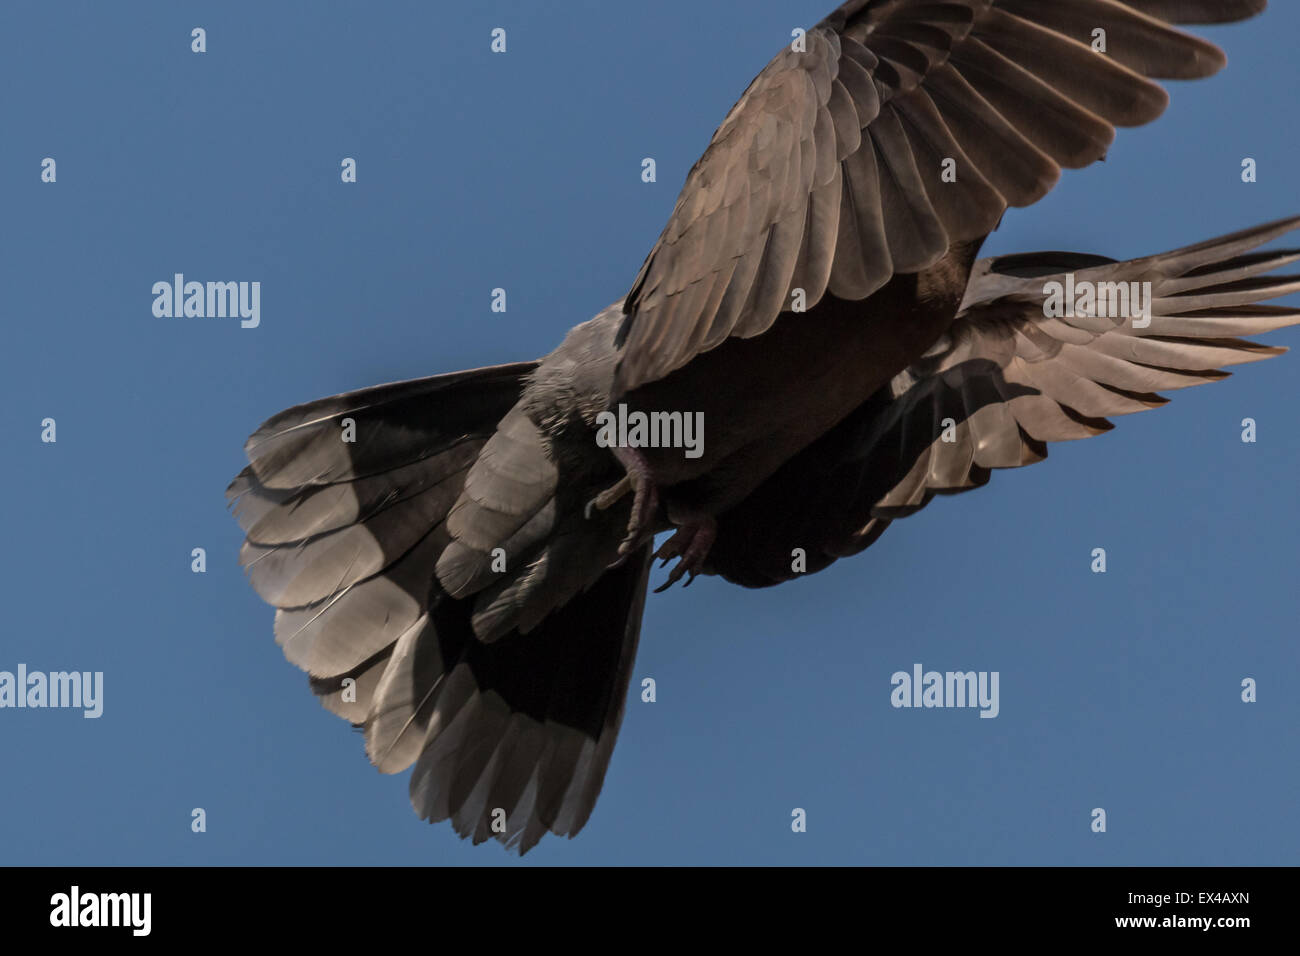 A pigeon flying high up in the air with its wings spread - Stock Image